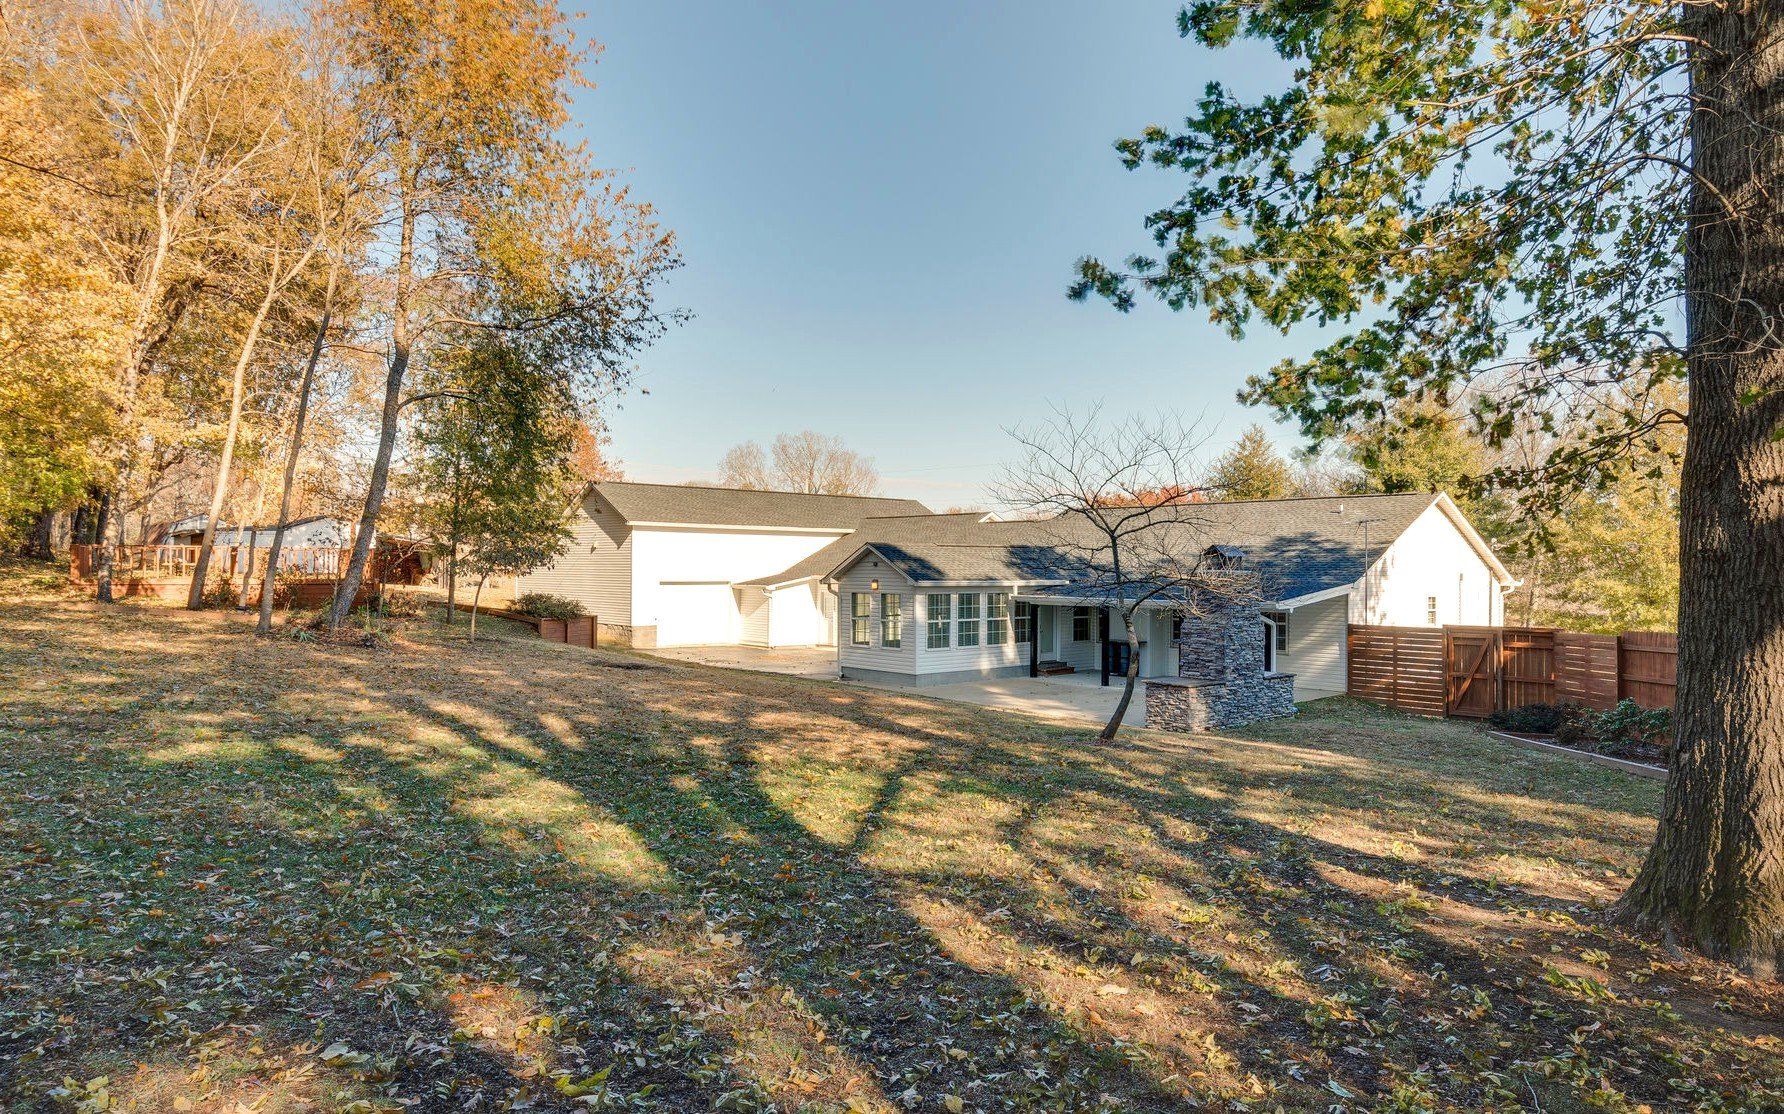 1526 Potter Dr, Columbia in Maury County County, TN 38401 Home for Sale